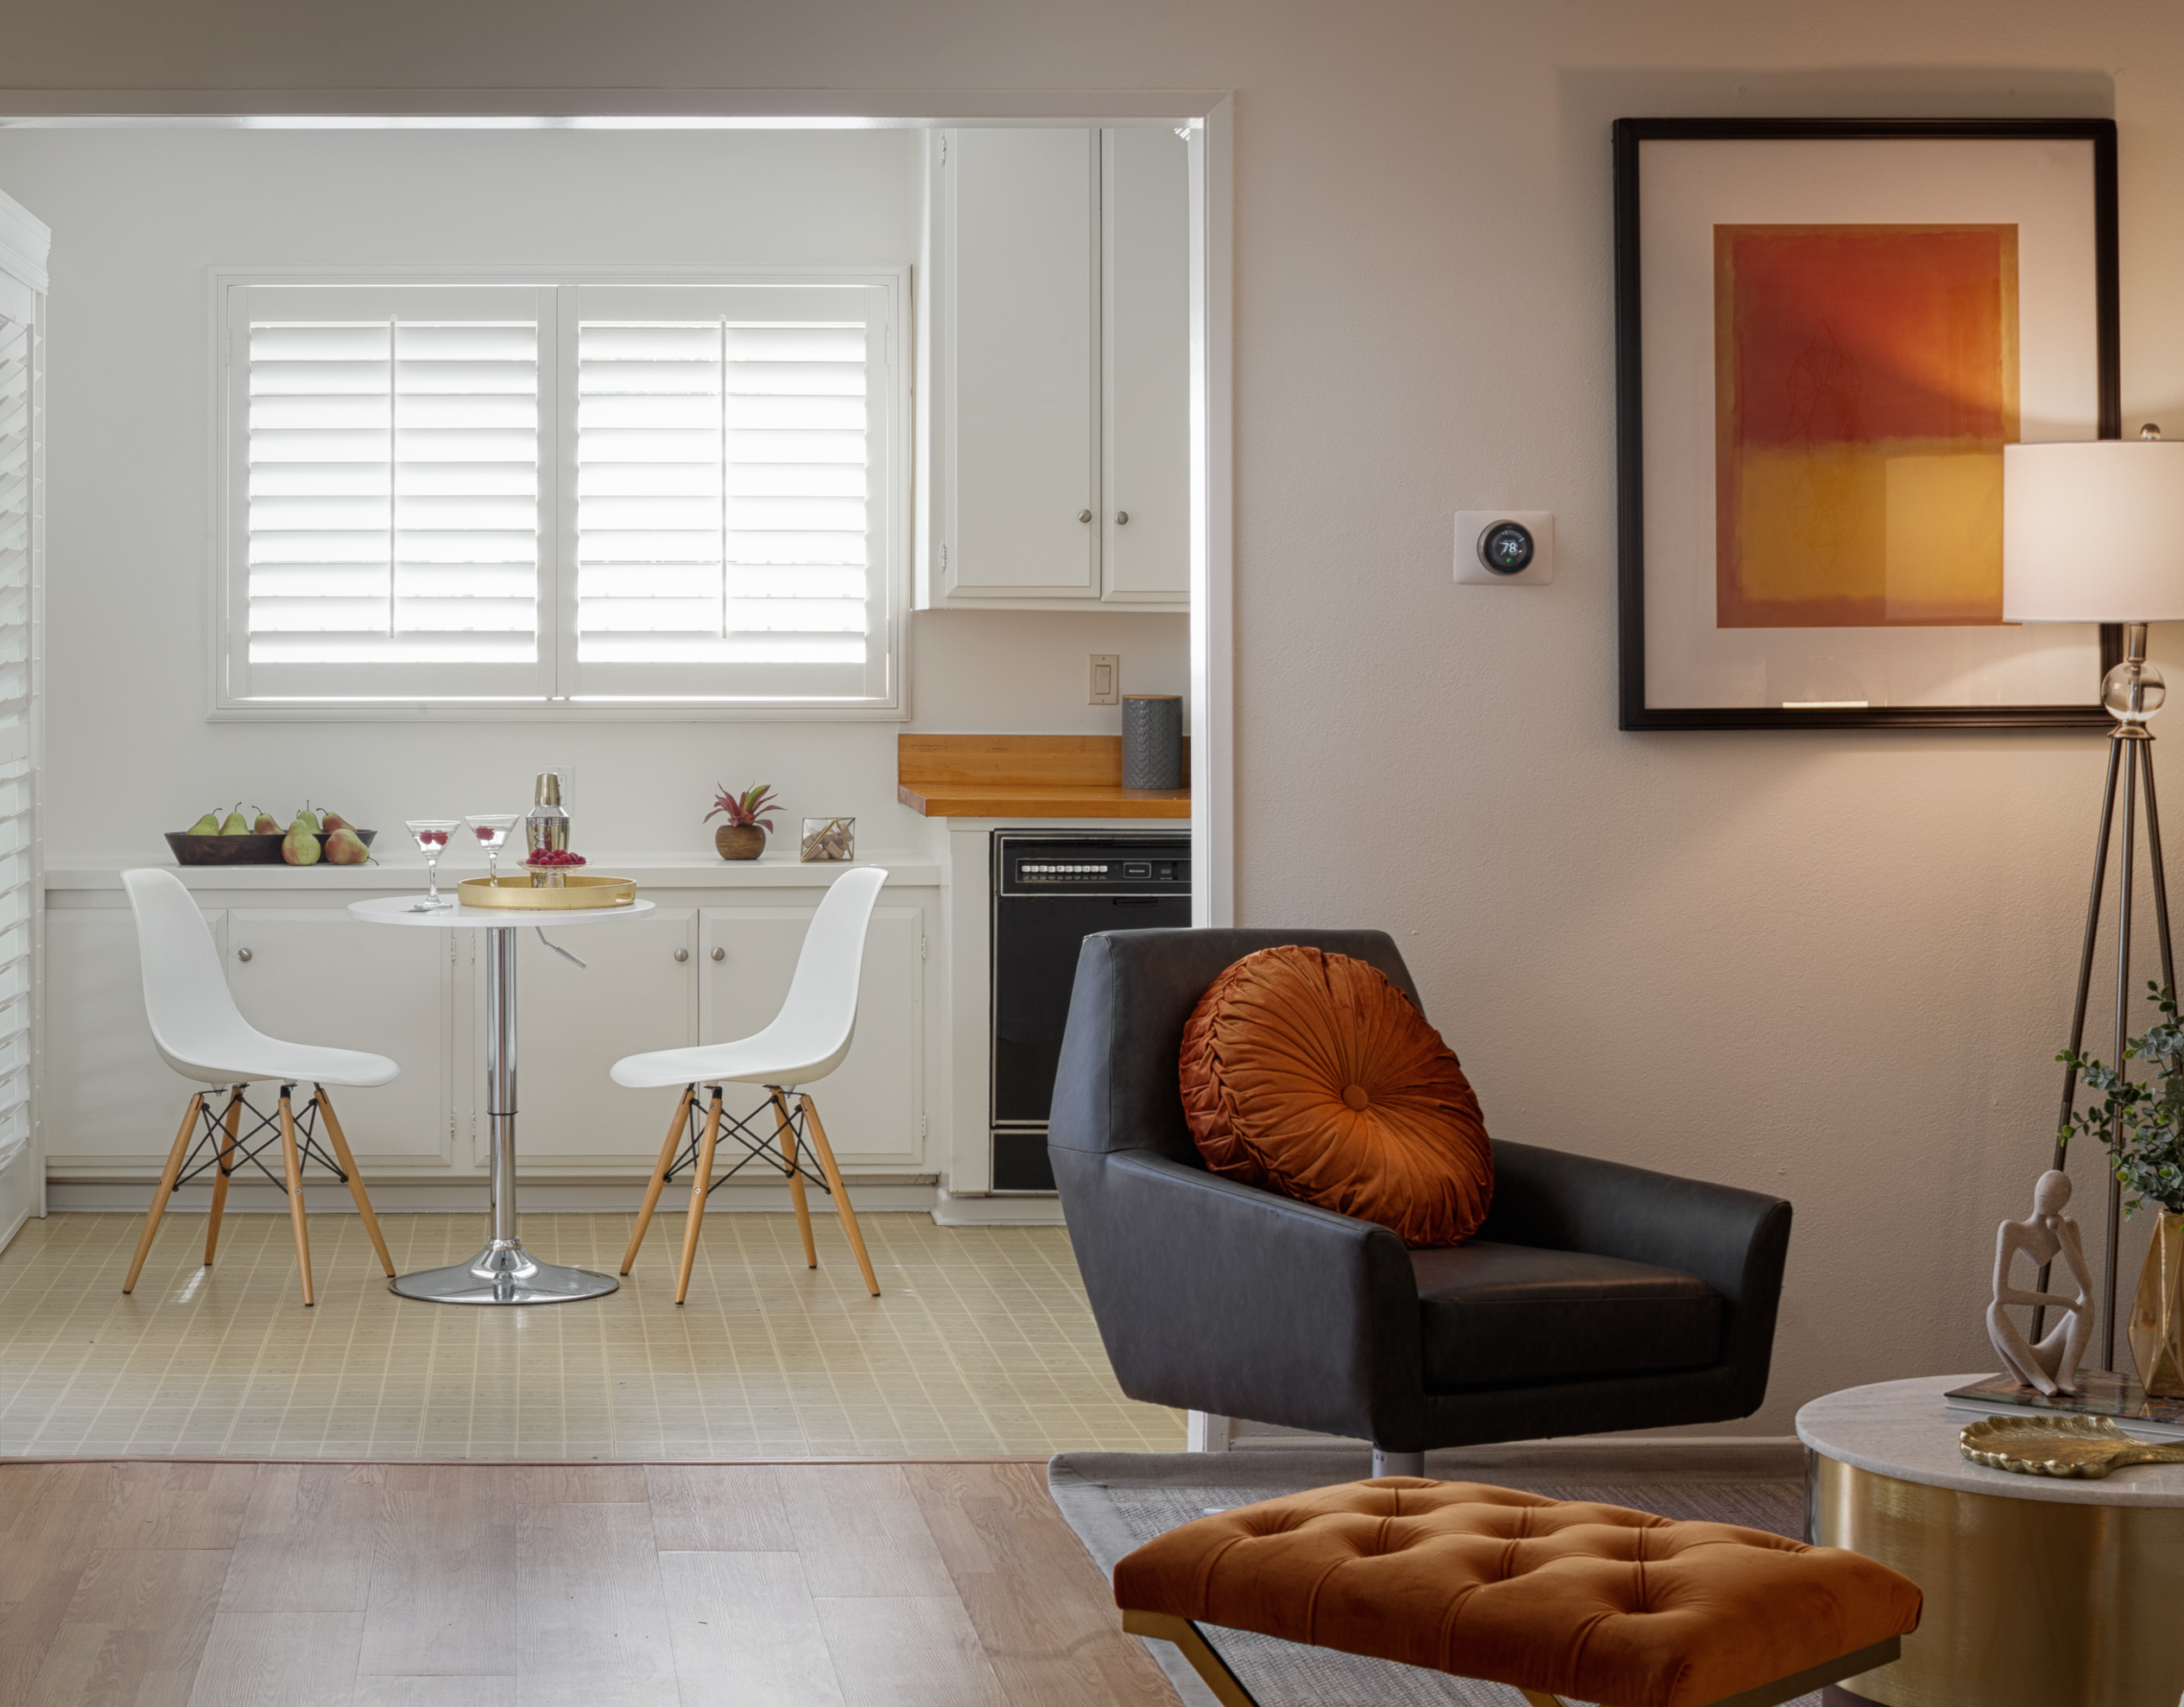 A view from one room into another, with a chair visible in the first room and a small table and chairs in the far room